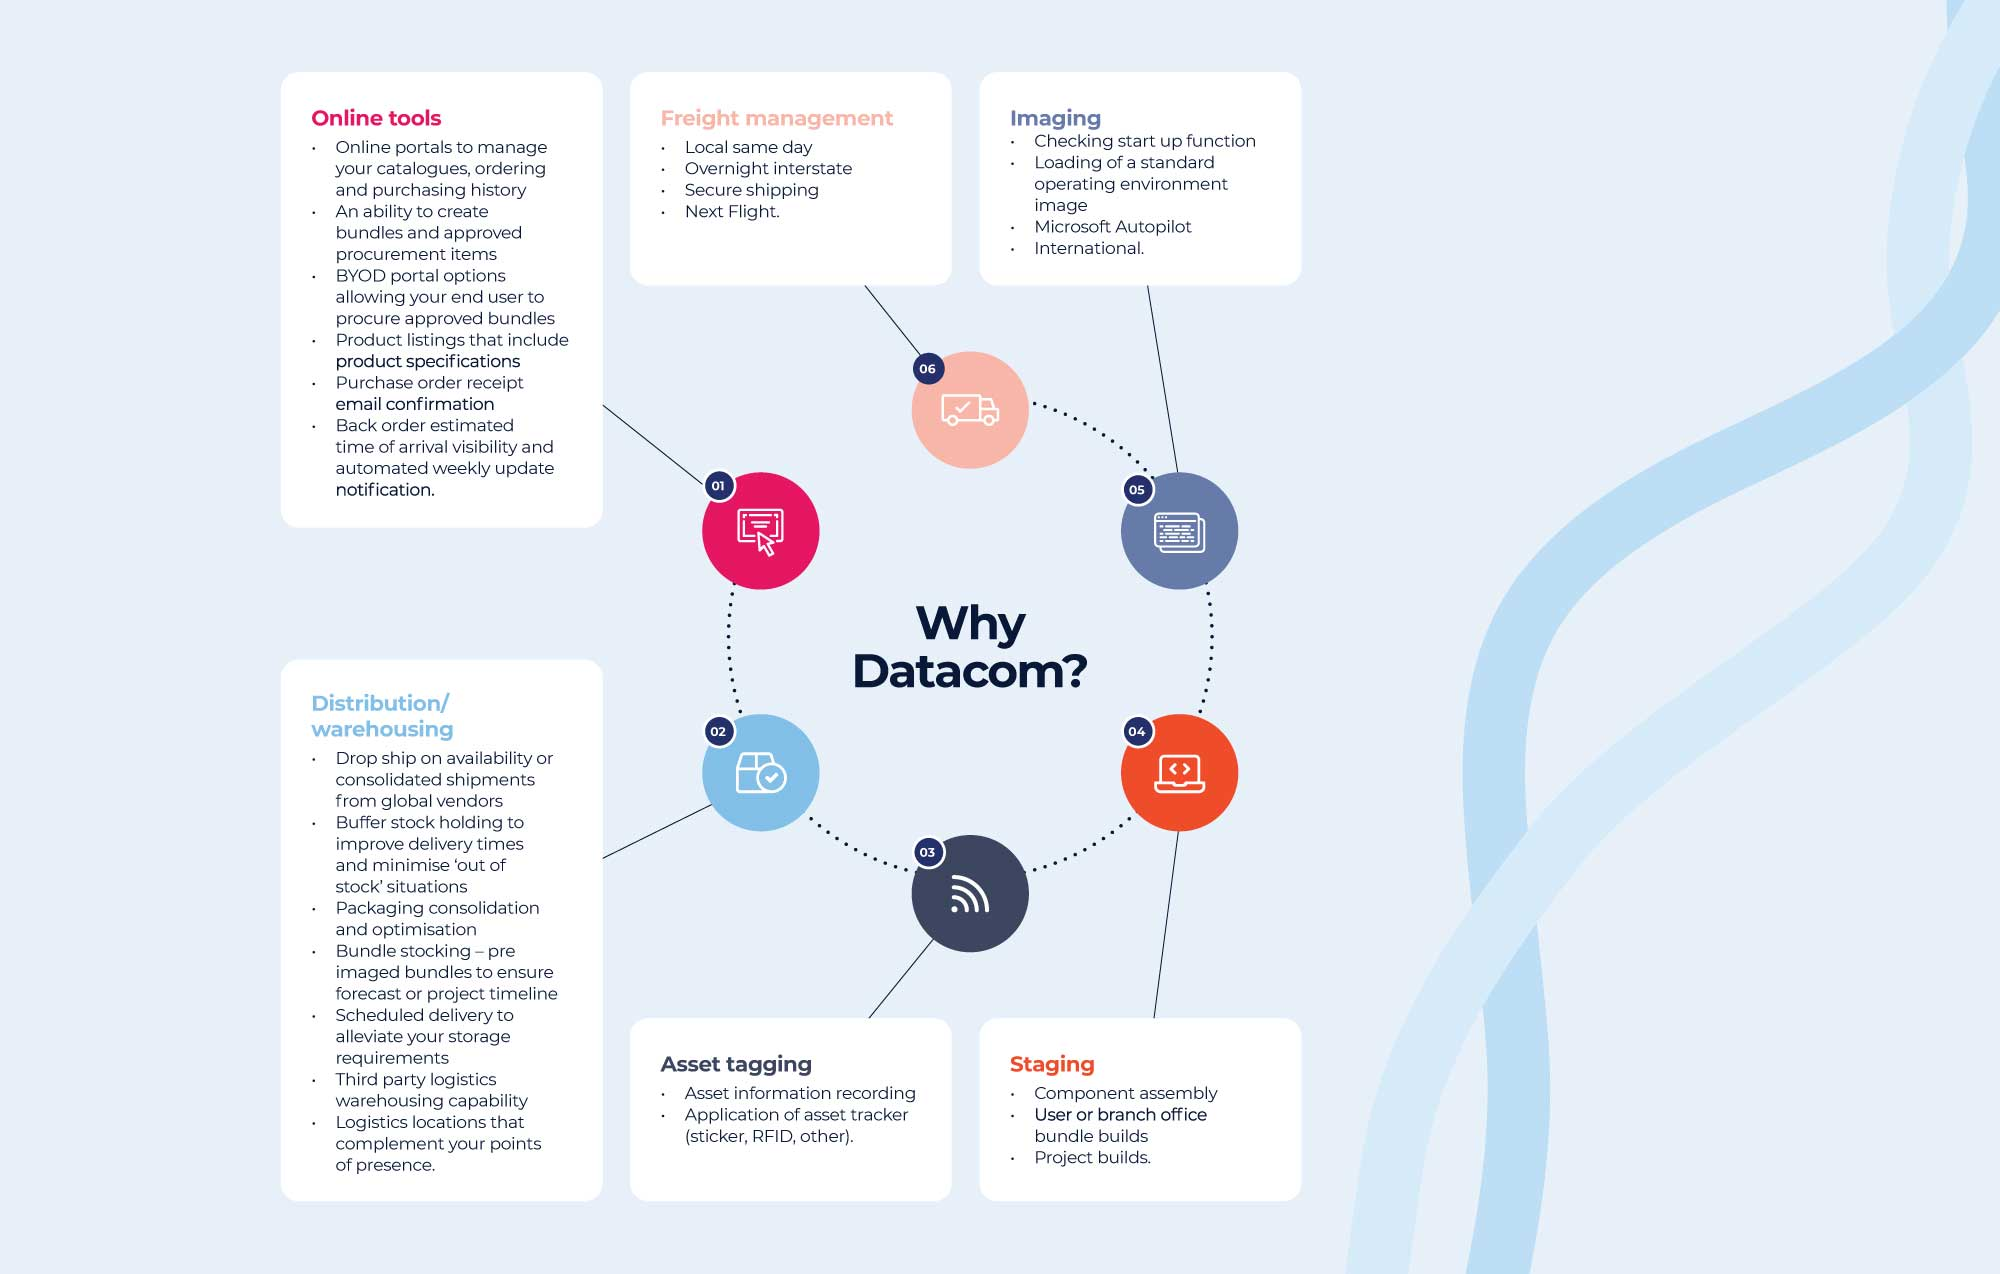 Infographic explaining why Datacom is the right choice for managing your supply chain